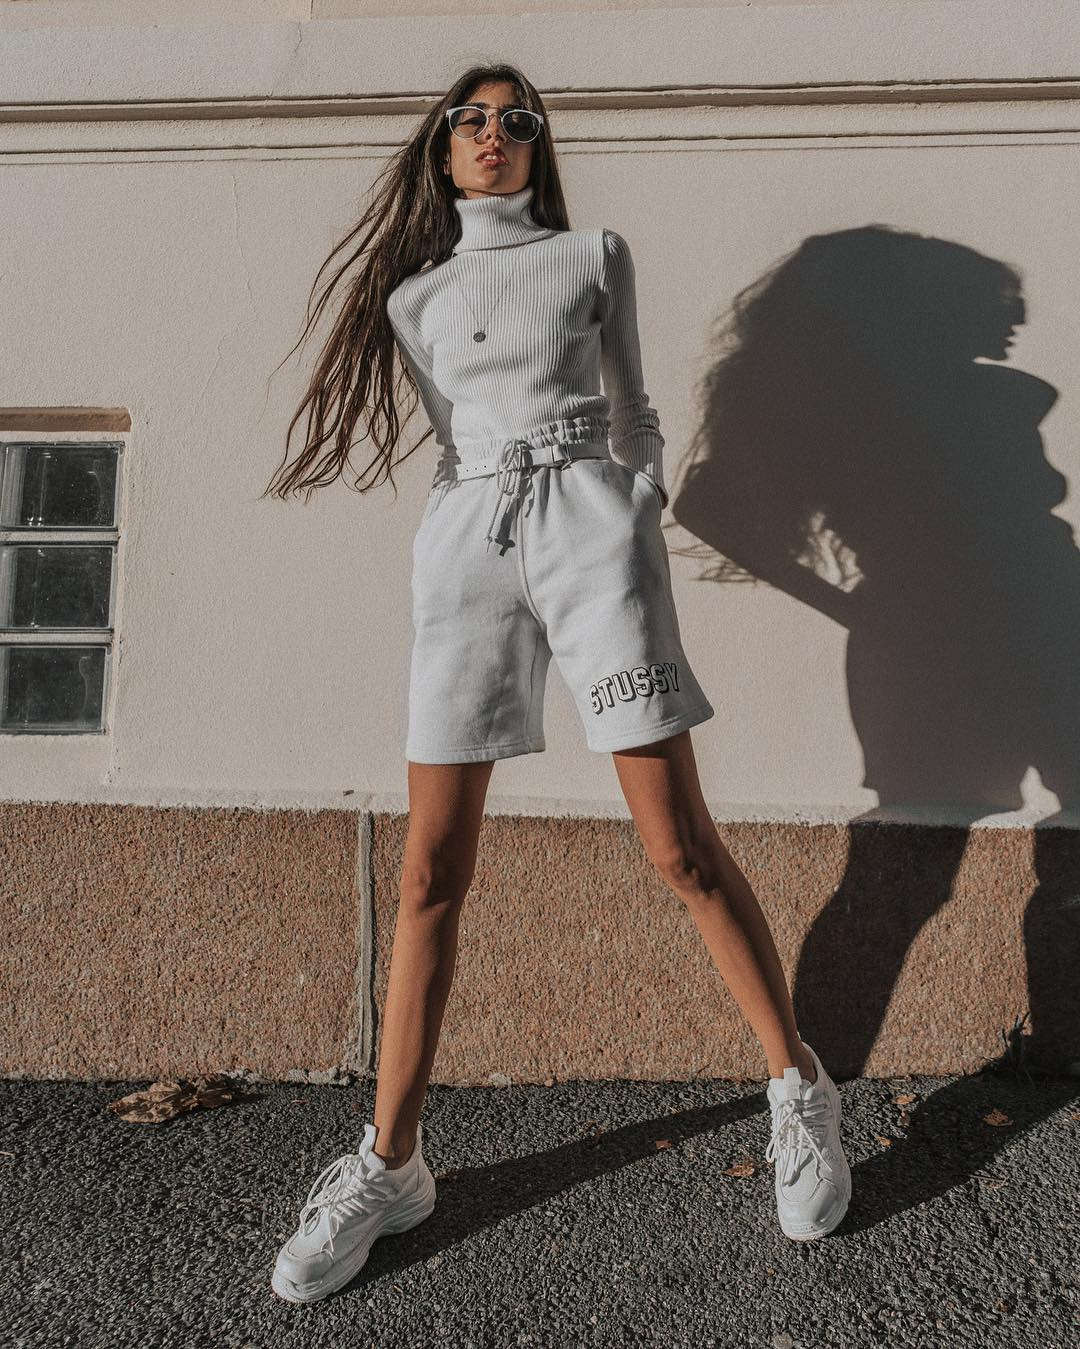 Turtleneck, Shorts, Sneakers: Monochrome Look For Spring 2020